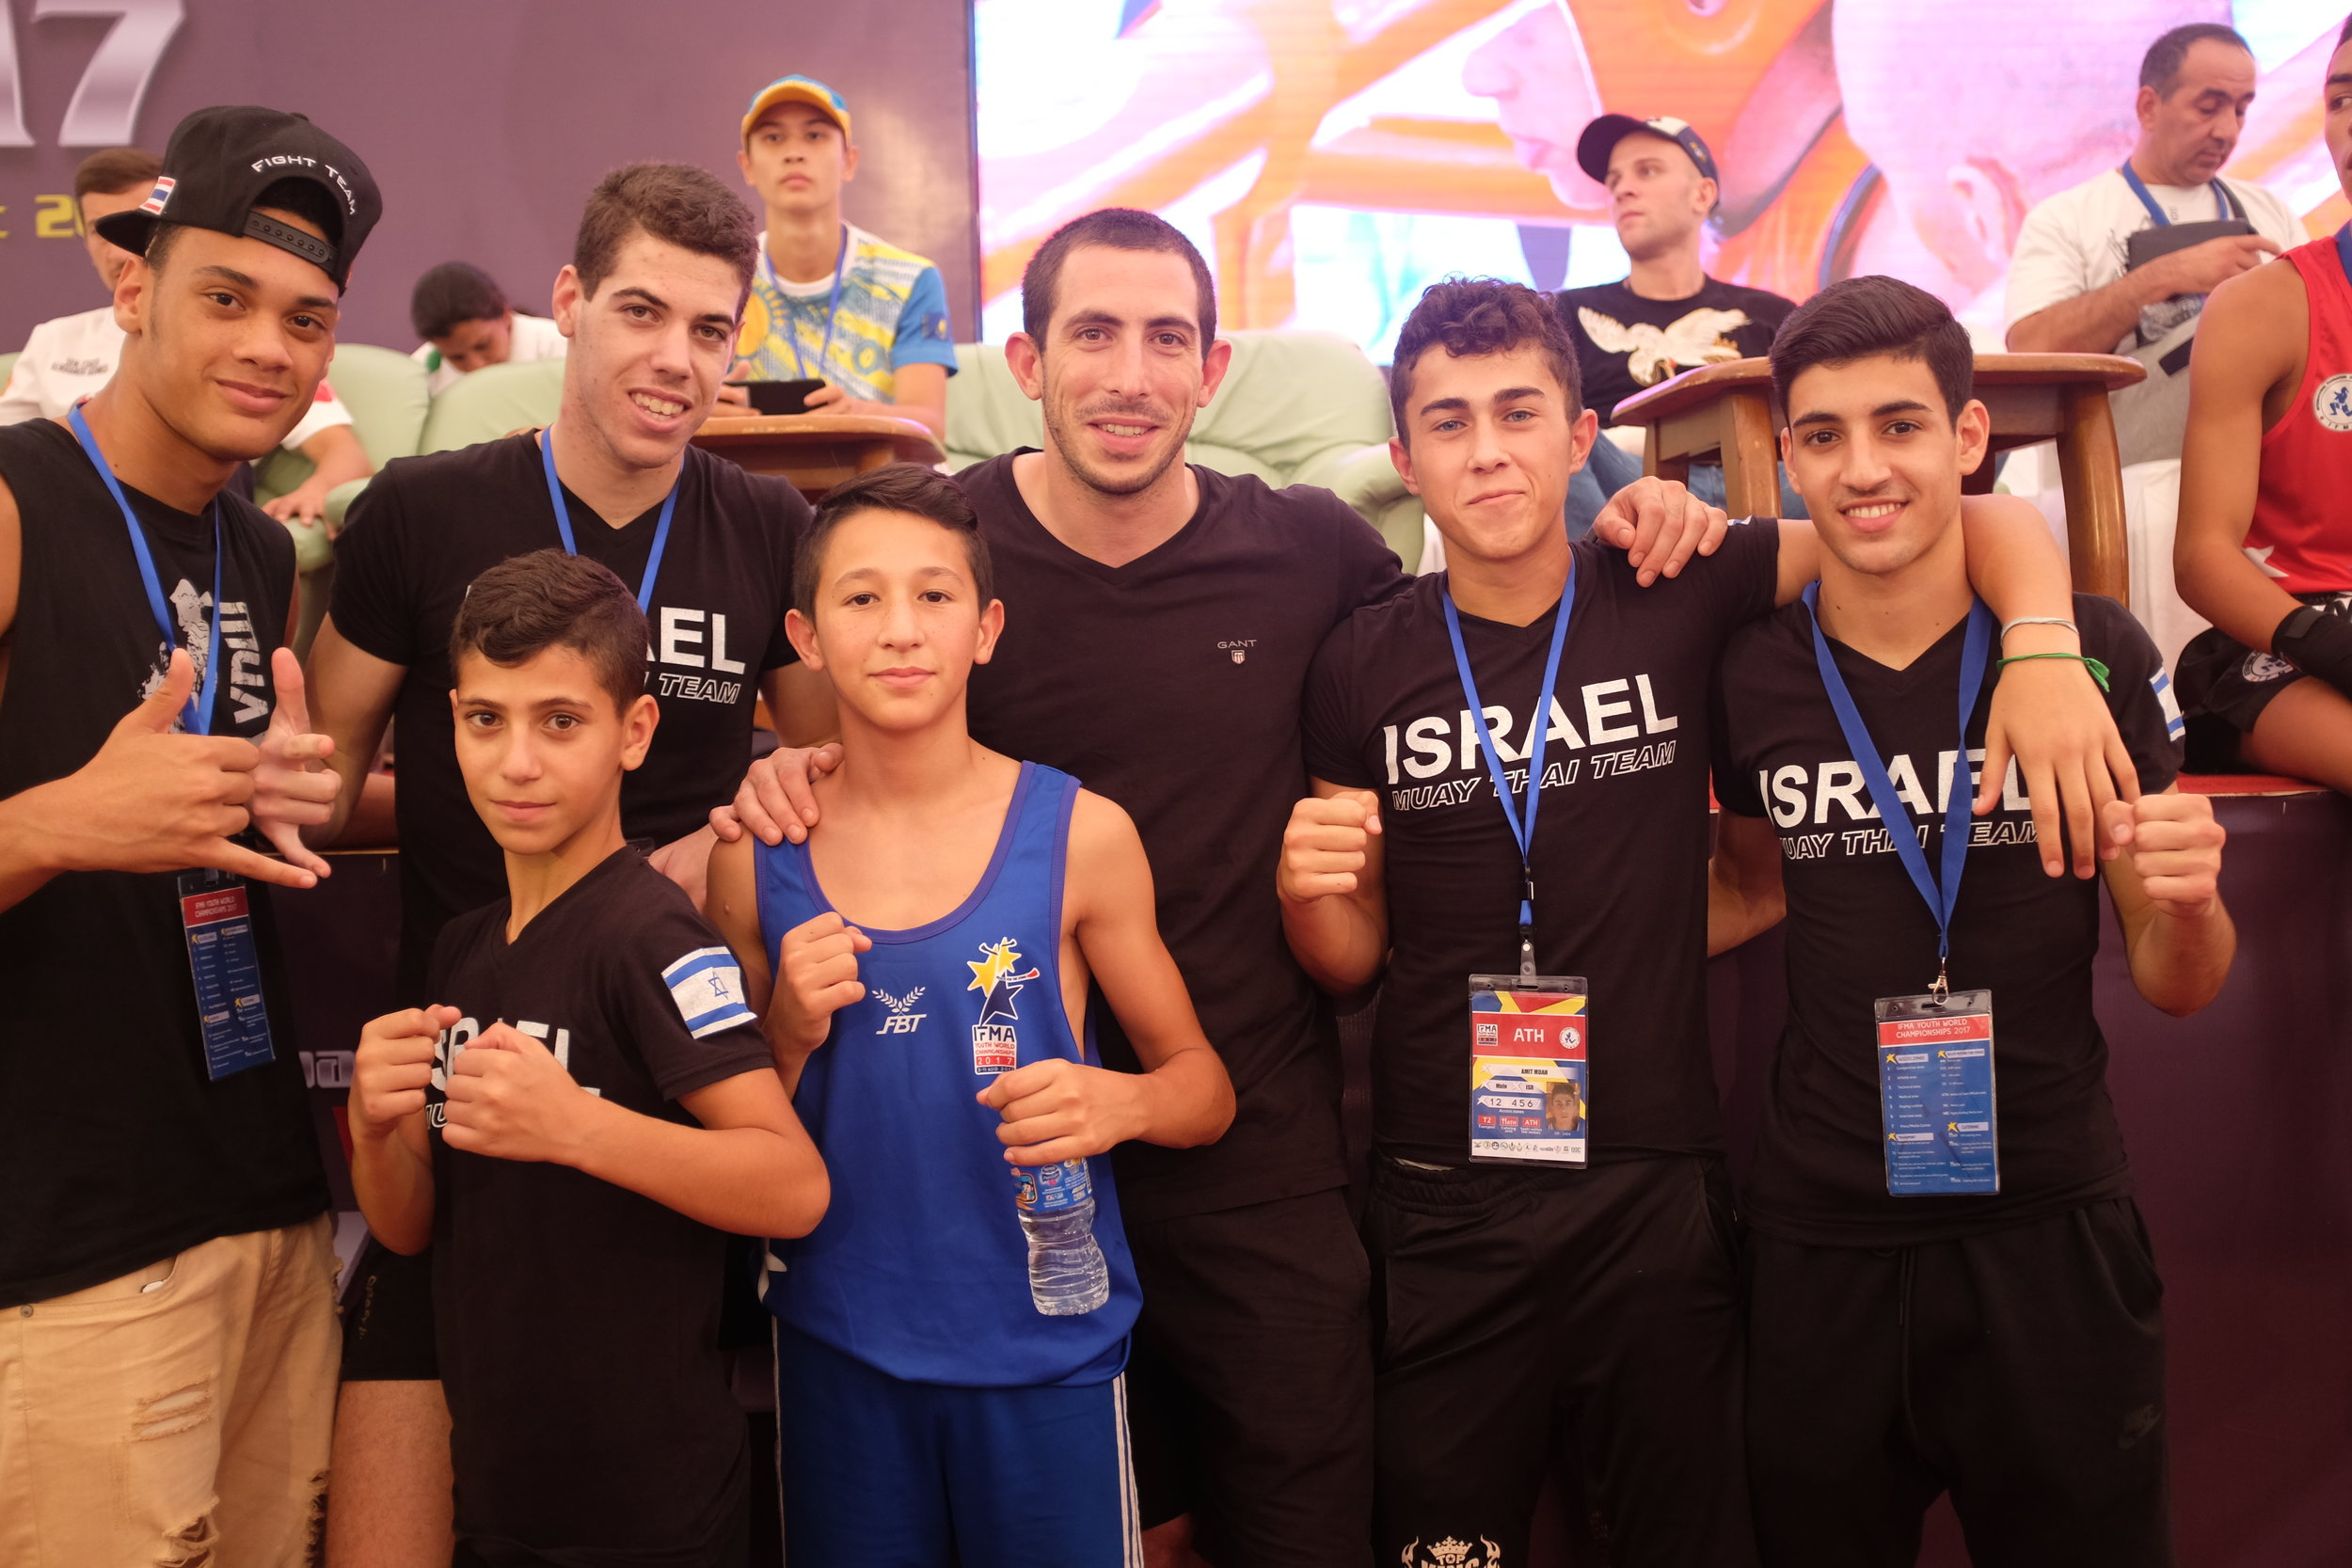 The Team Israel Crew